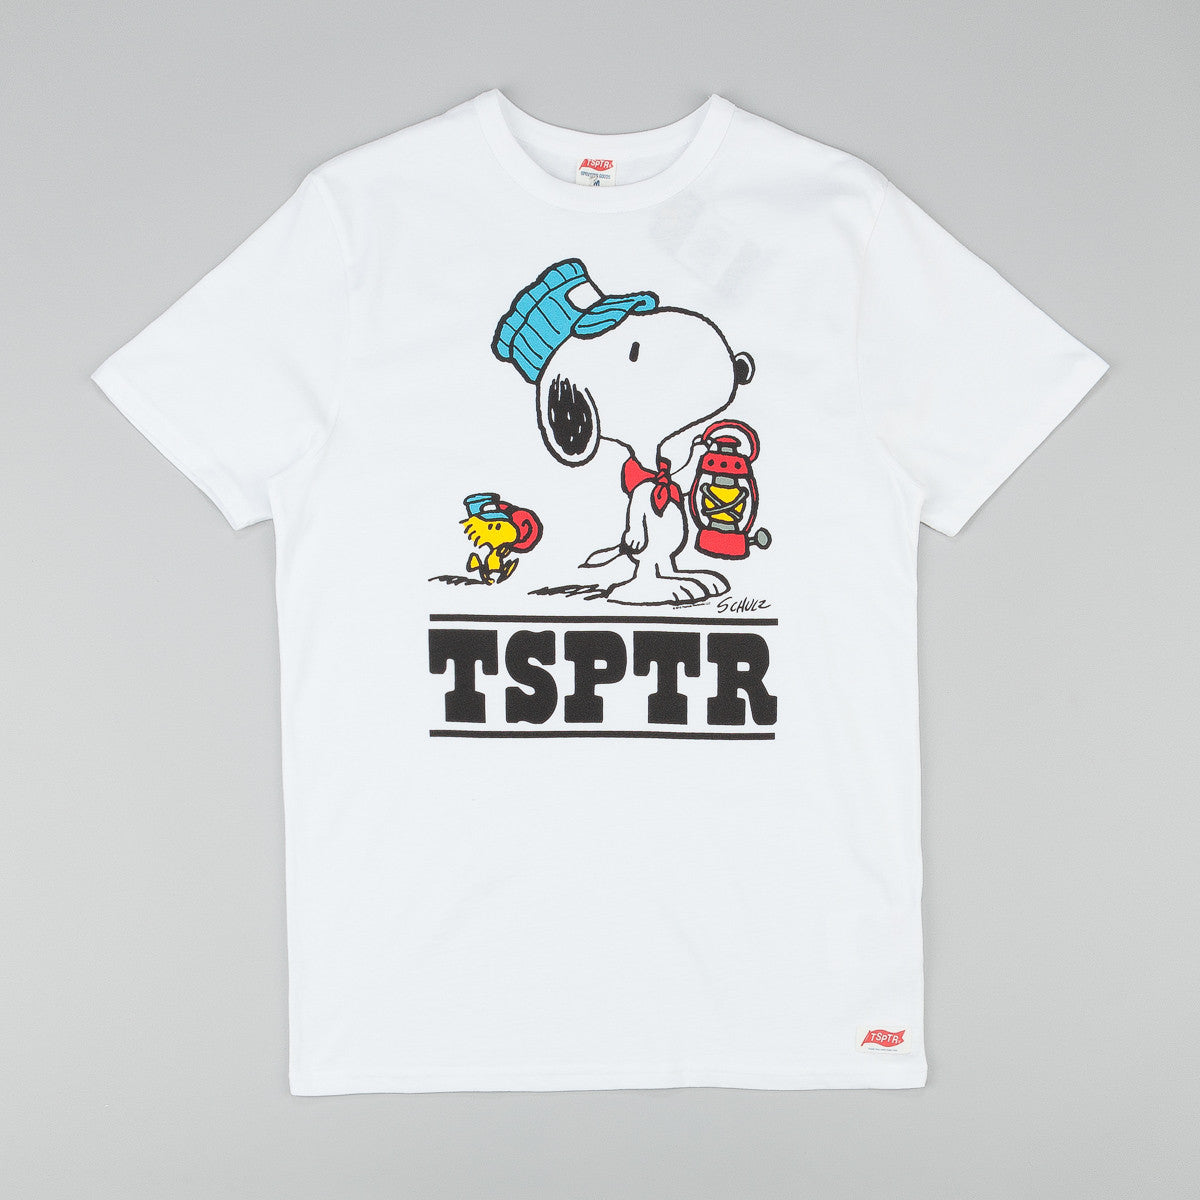 TSPTR Loco Snoopy T-Shirt